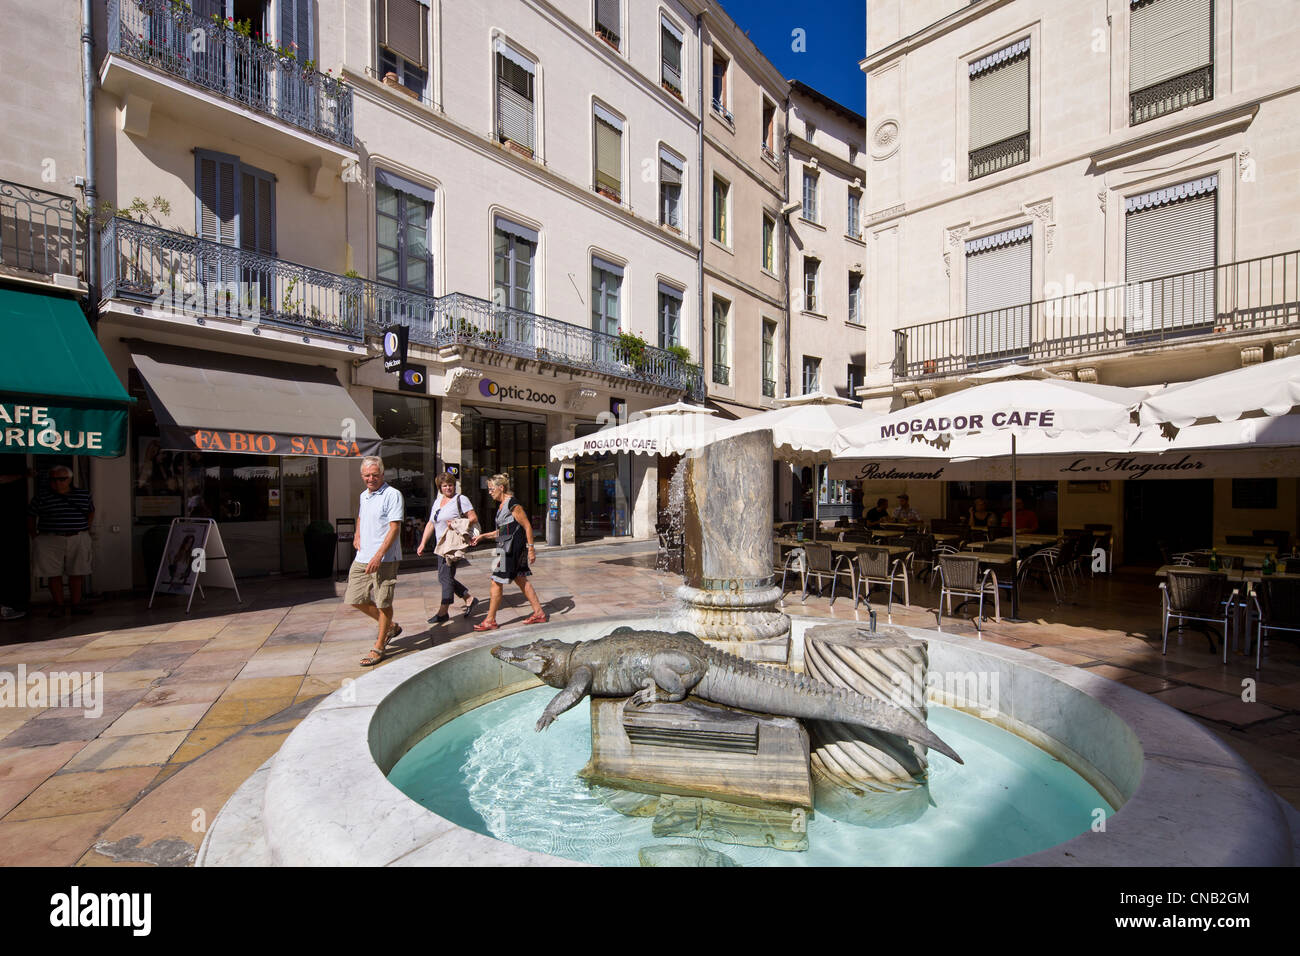 France, Gard, Nimes, the Place du Marche, Fontaine au Crocodile by artists Martial Raysse, Silvio and Vito Tongiani - Stock Image